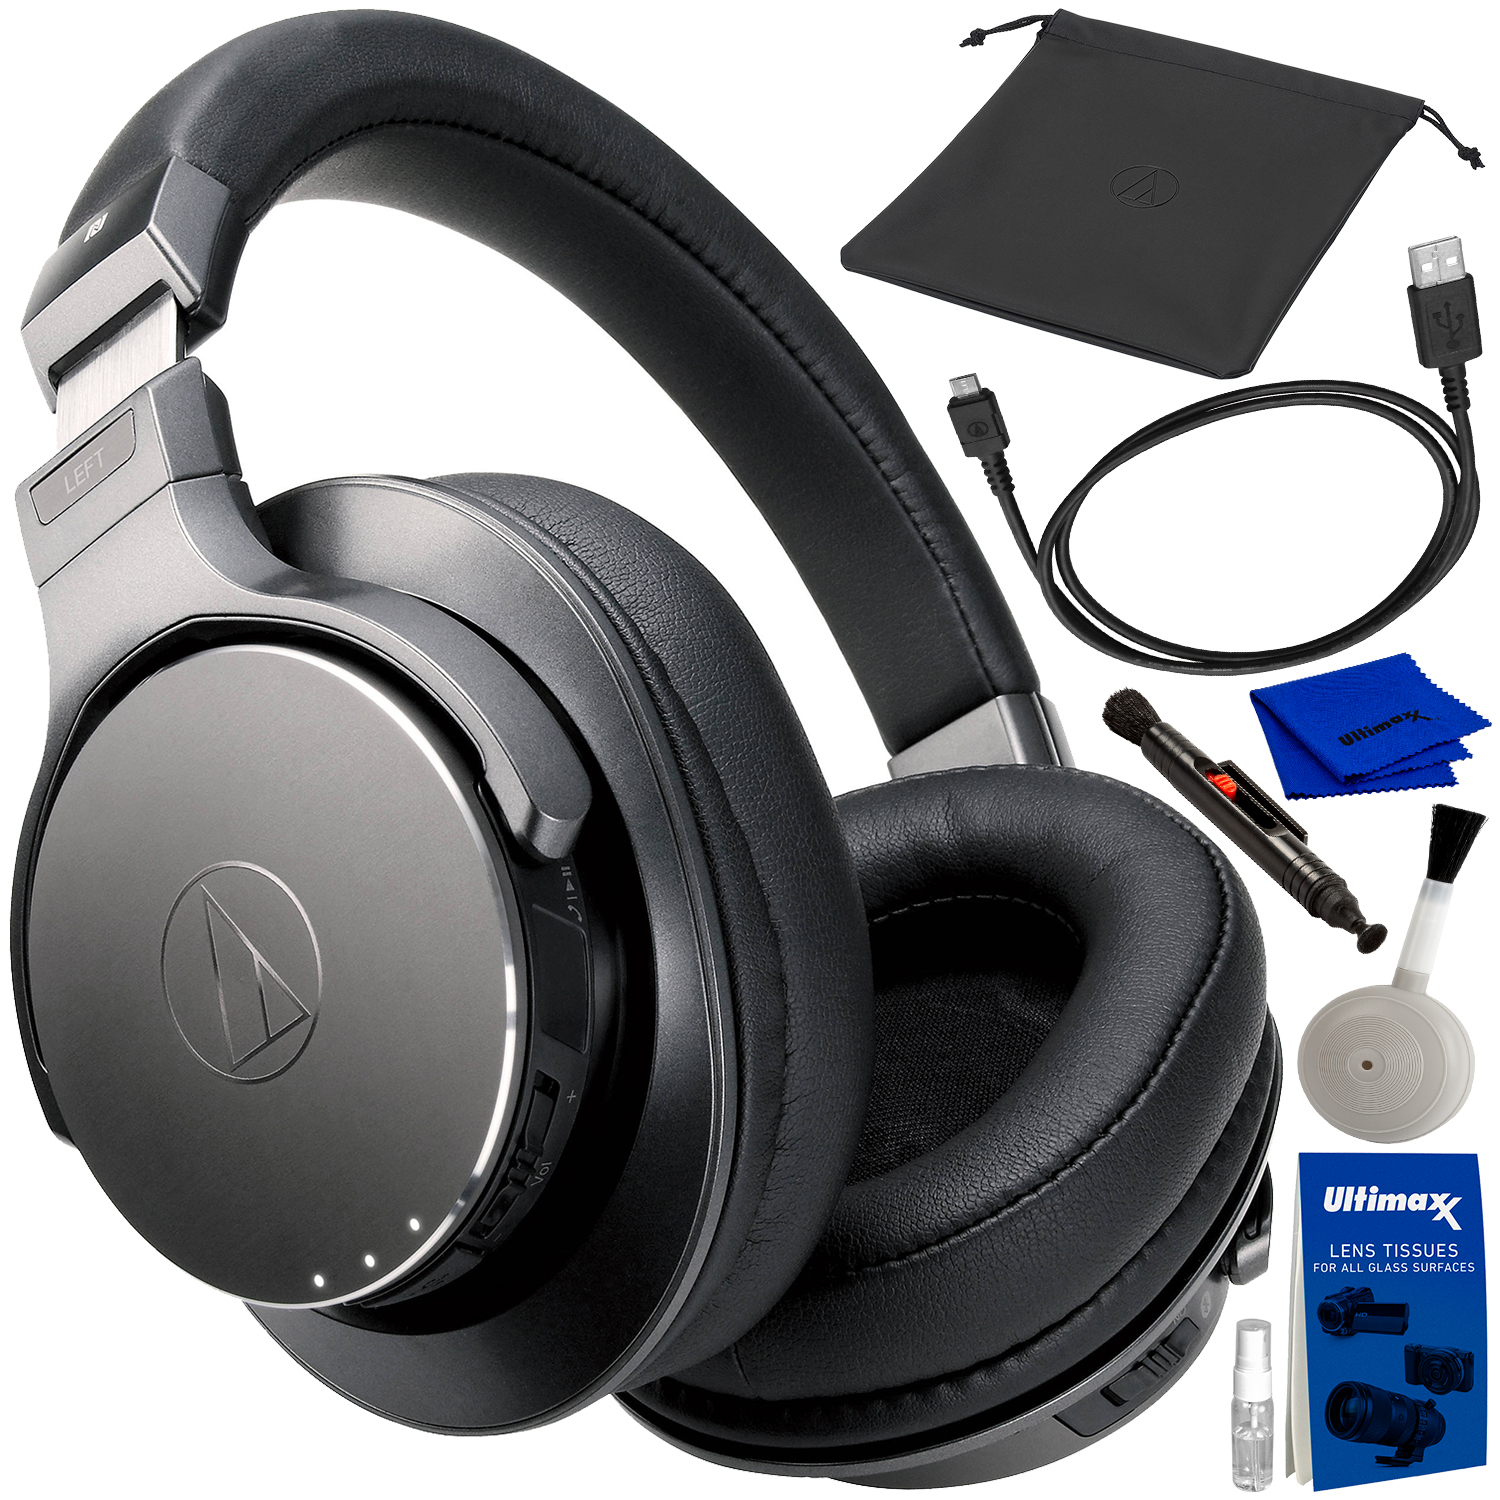 Audio-Technica ATH-DSR7BT Cons